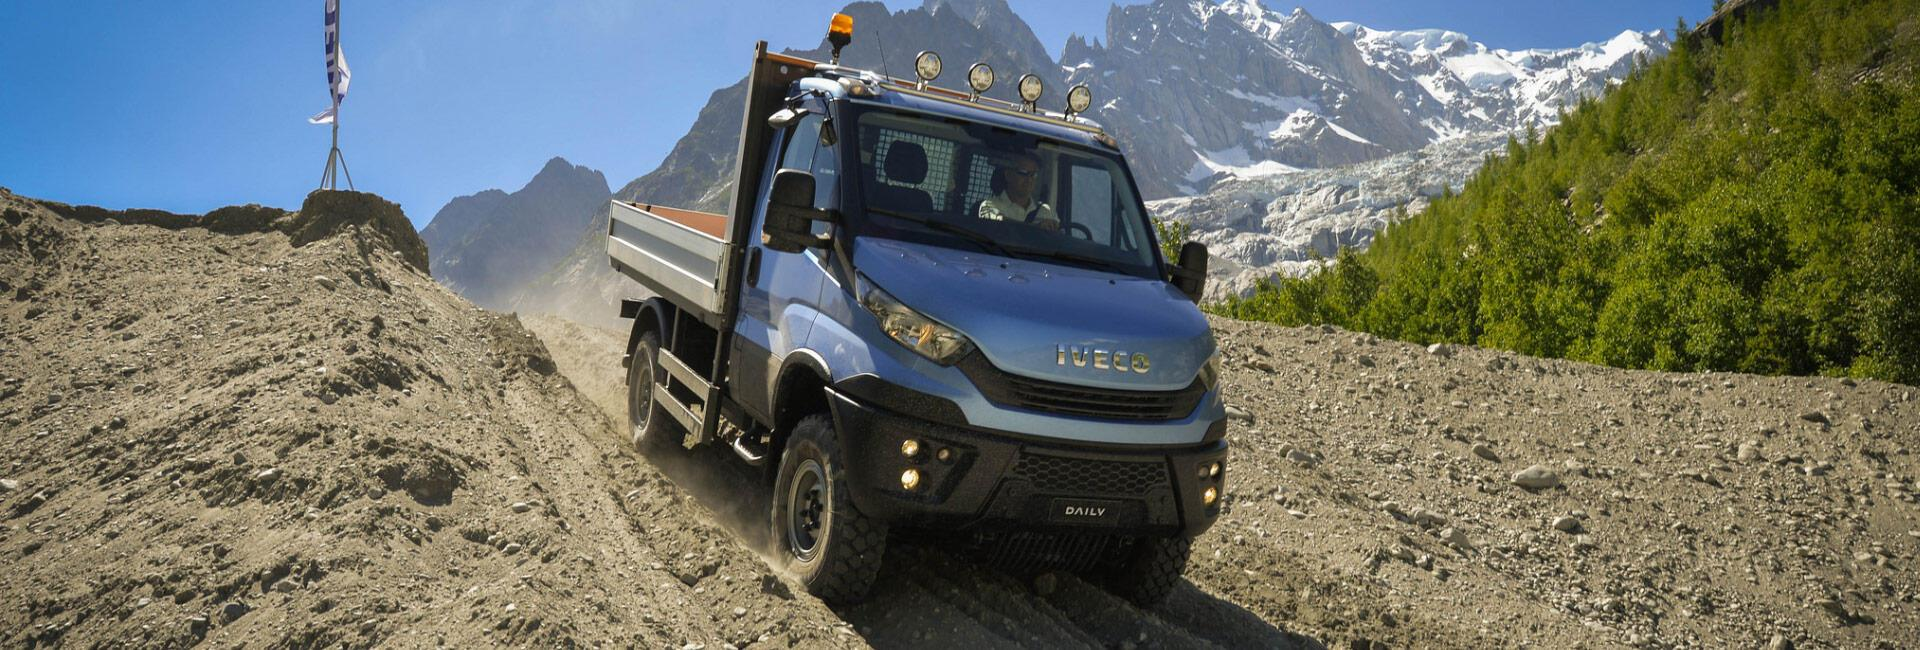 New IVECO Daily 4x4 Launch Tour coming to North East Truck and Van